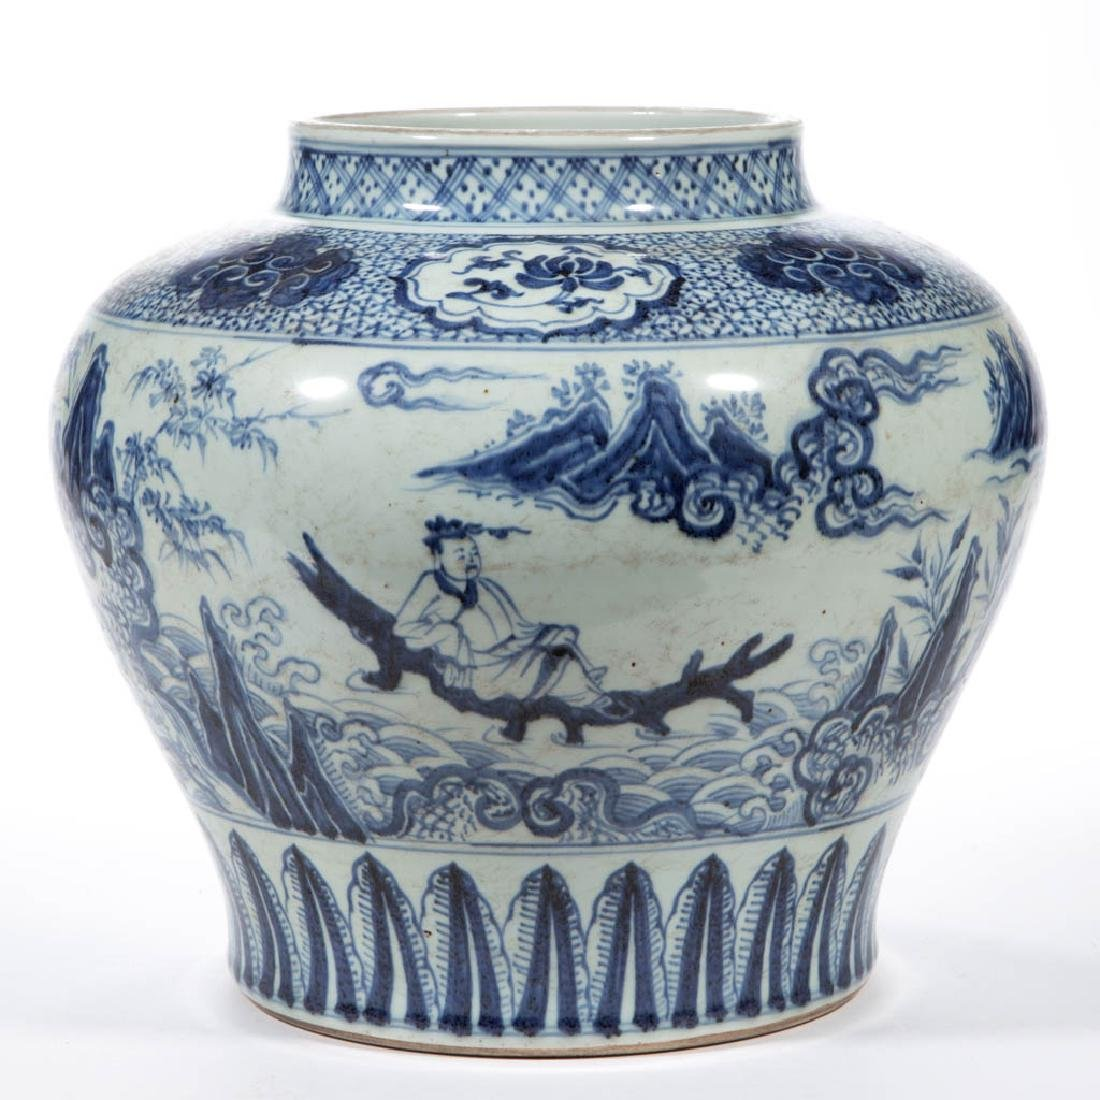 CHINESE EXPORT QING-STYLE PORCELAIN BLUE AND WHITE JAR